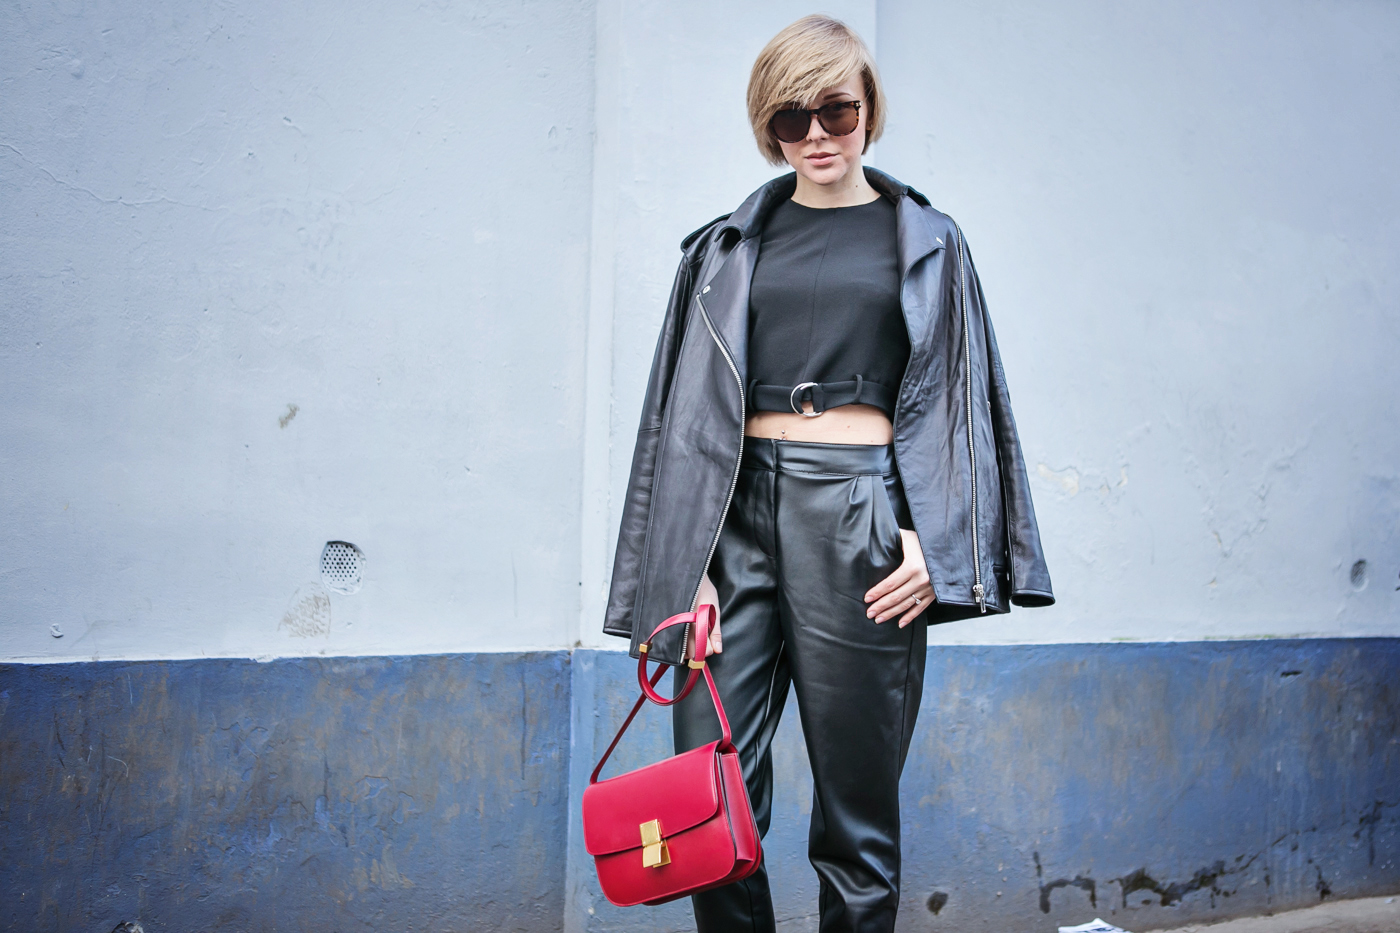 thecablook darya kamalova russian italian blogger street style short blonde hair mfw milan fashion dsquared fashion show celine classic box red leather asos pants zara crop top with belt black mules_-6